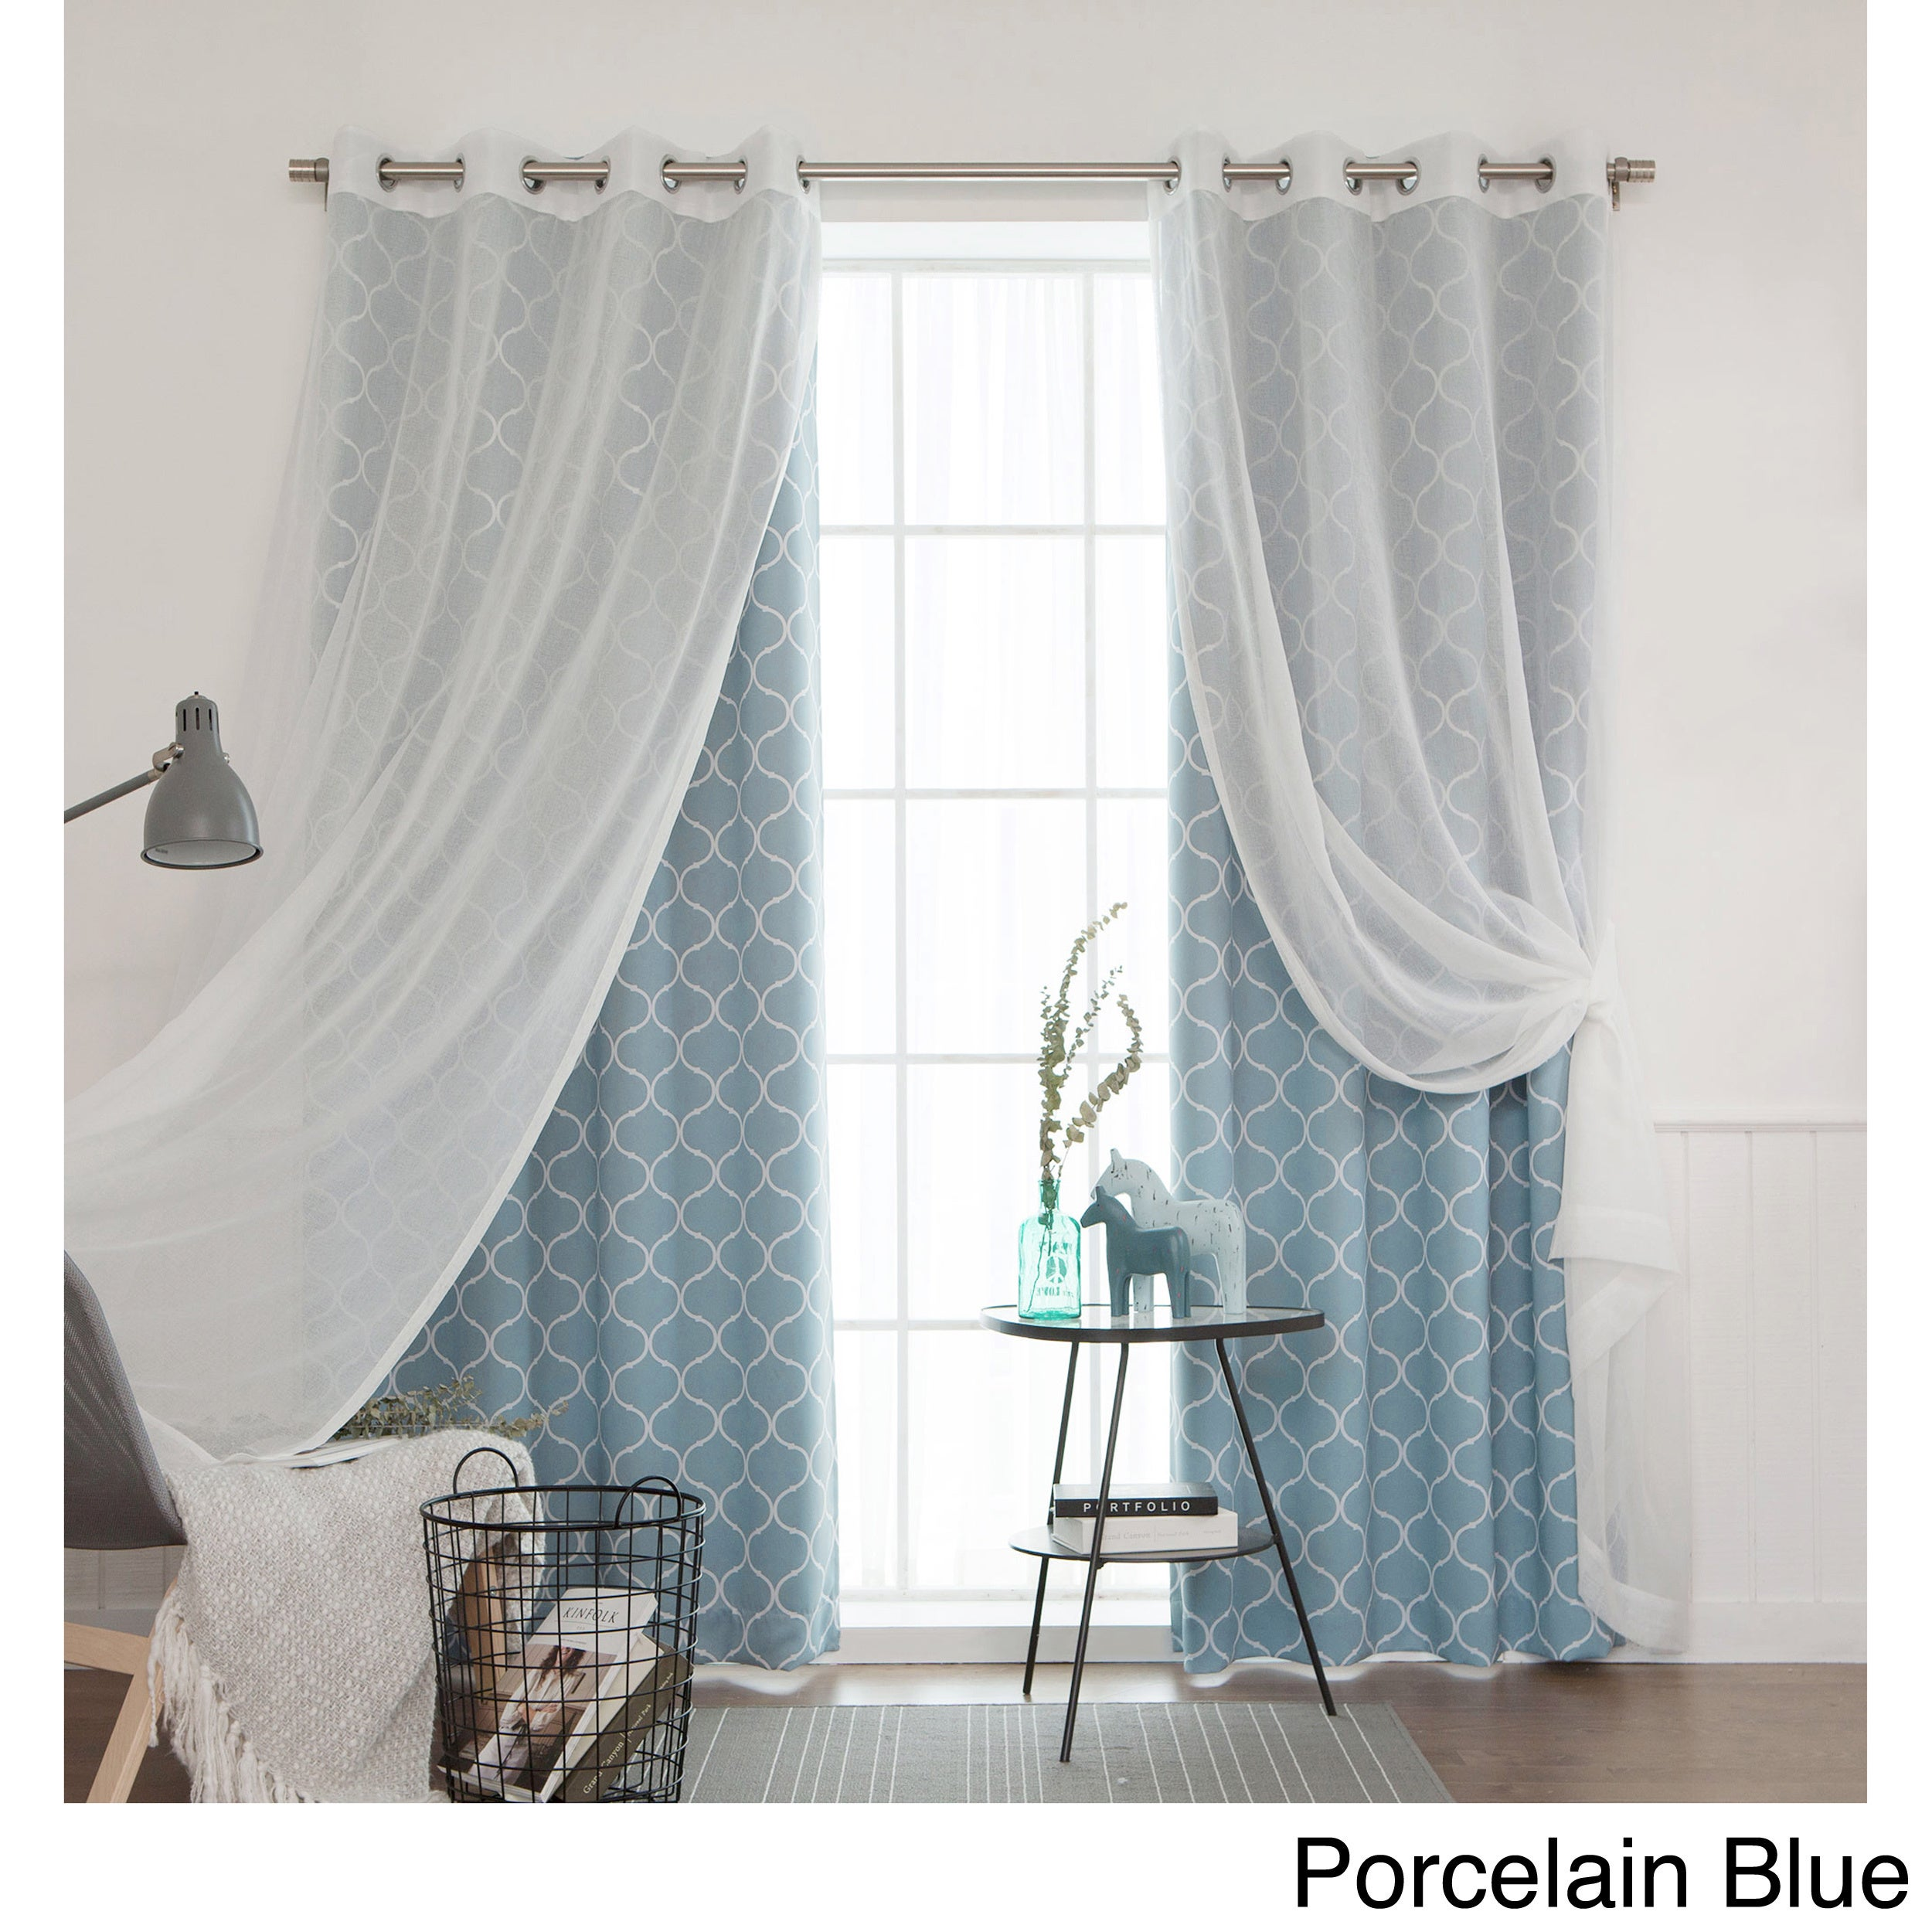 Aurora Home Mix Amp Match Curtains Blackout Tulle Lace Sheer